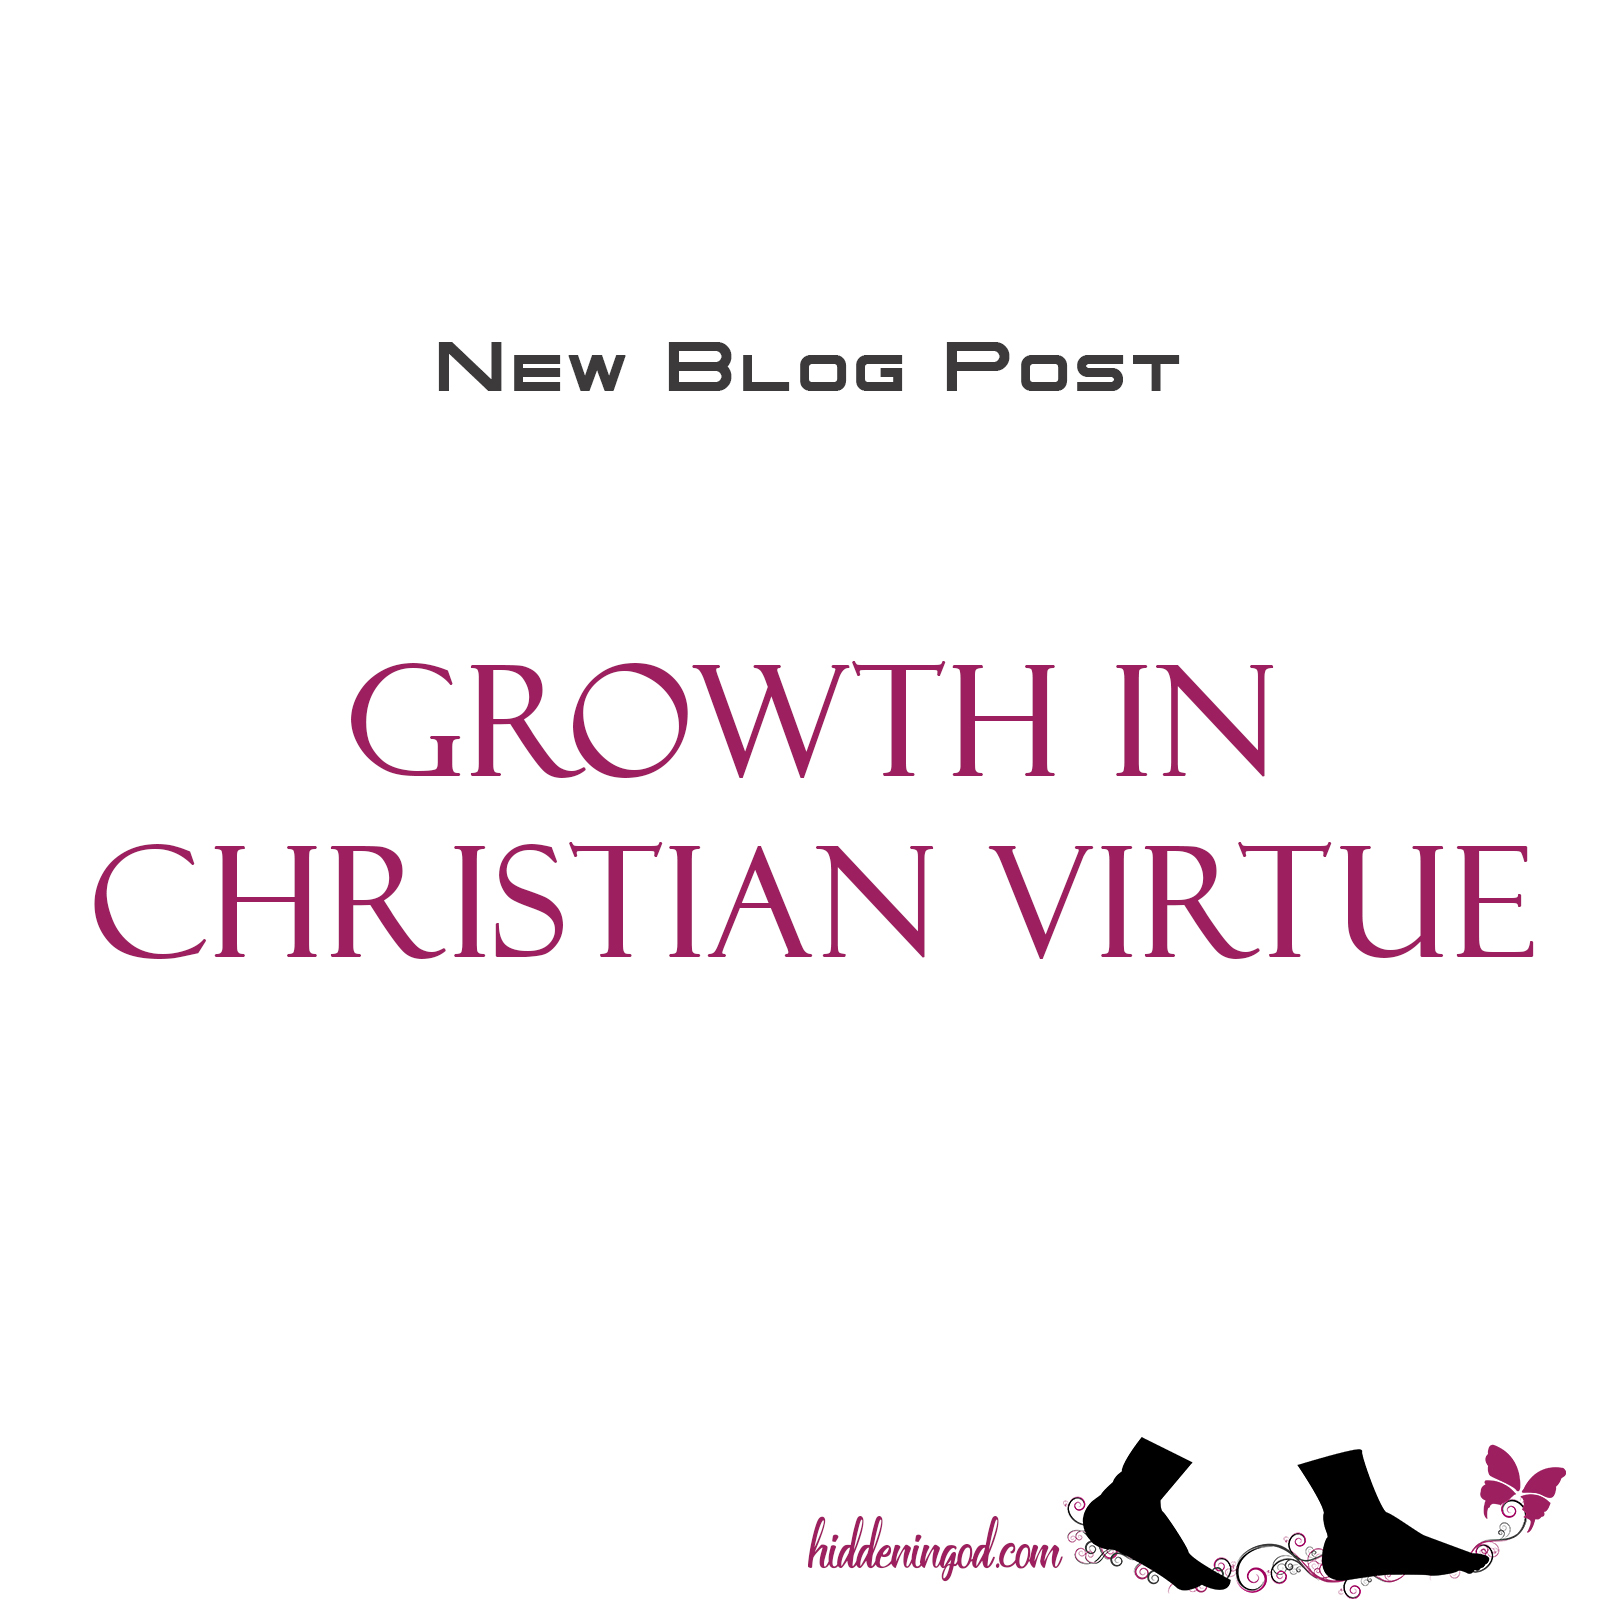 Growth in Christian Virtue Post